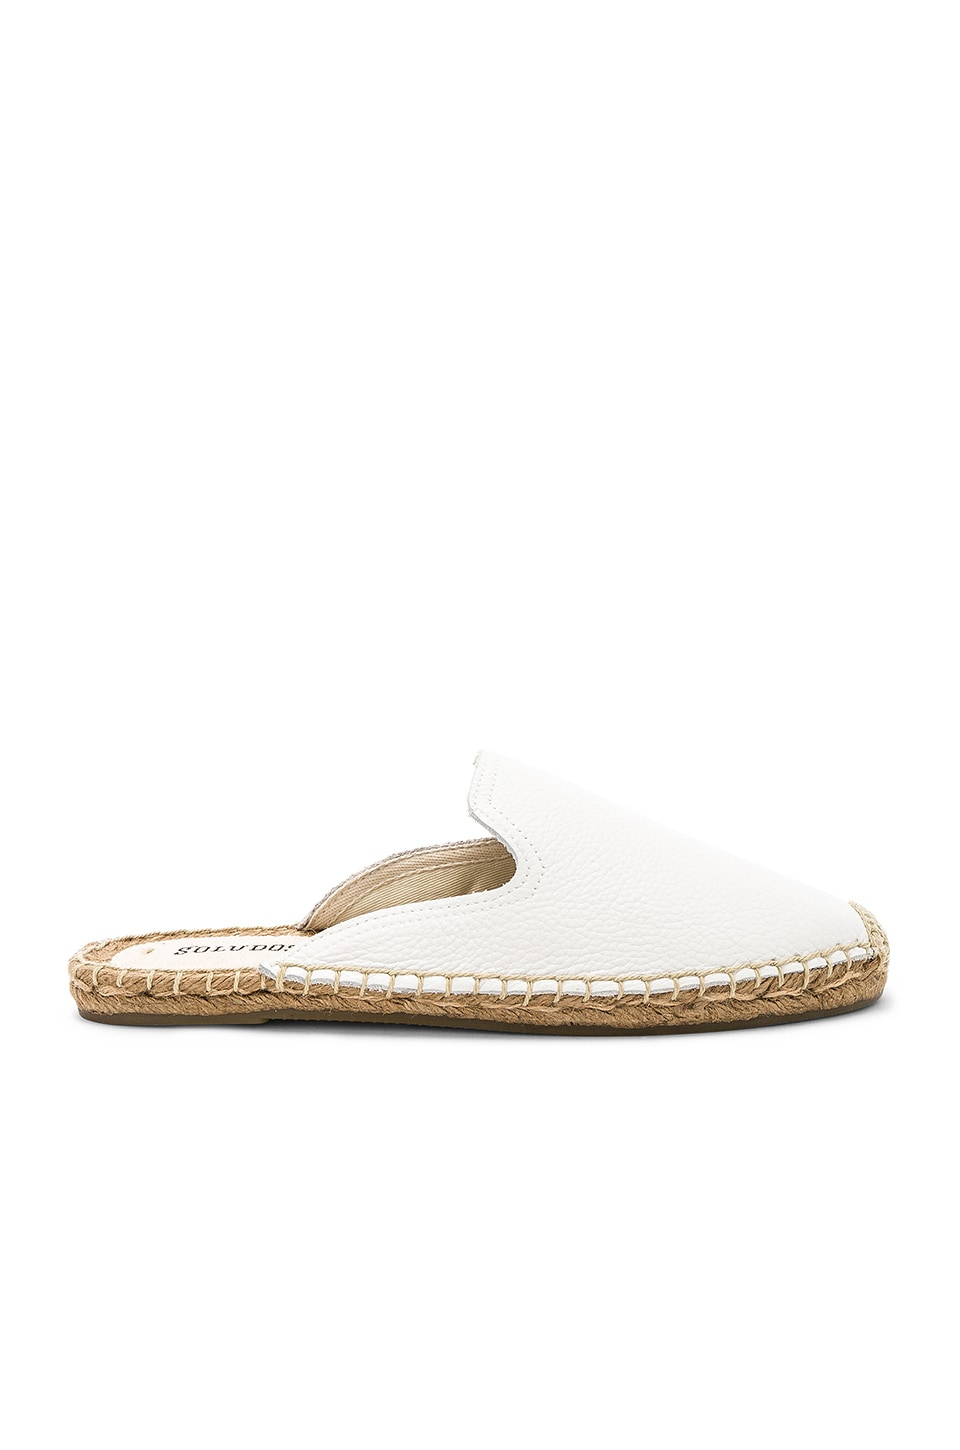 Soludos Tumbled Leather Mule in White